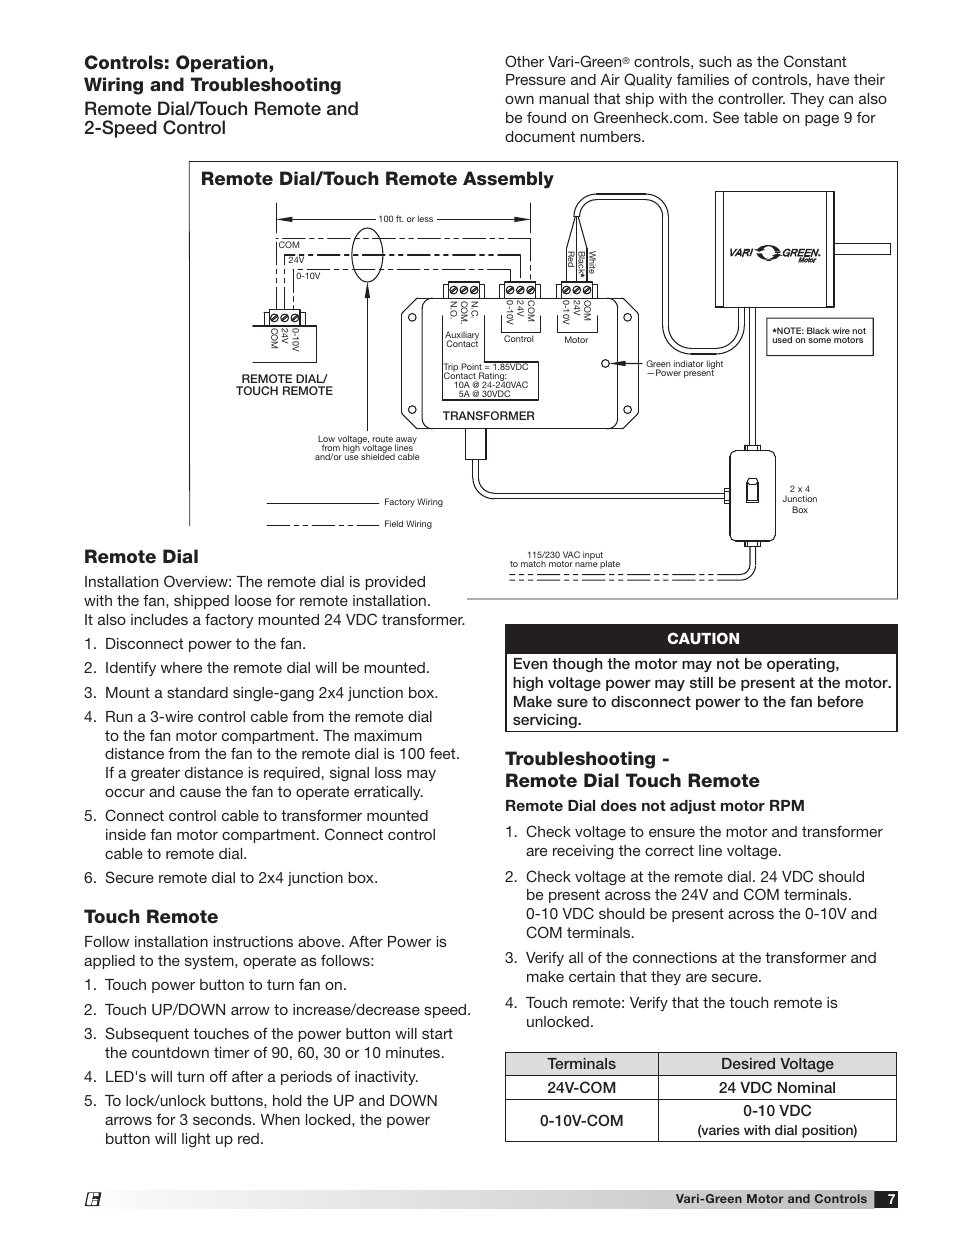 2006 Malibu Ecm Wiring Diagram Electrical Diagrams Emc Motor Greenheck Block And Schematic U2022 2001 Impala